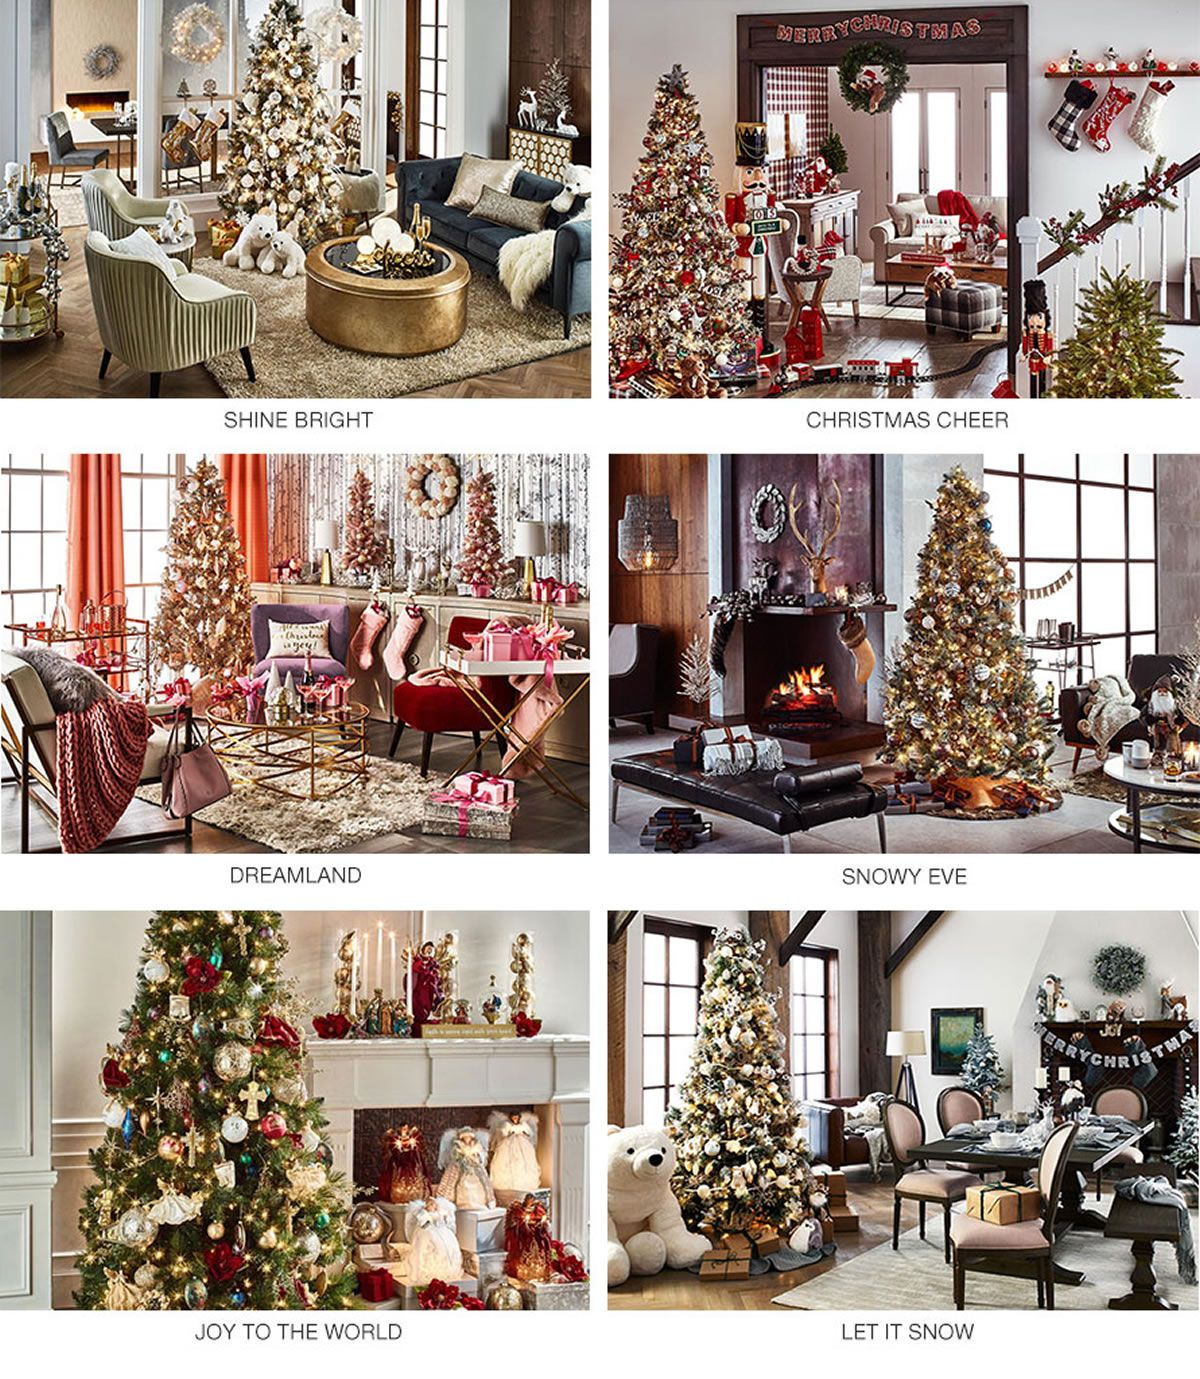 shine bright christmas cheer dreamland snowy eve joy to the world - Christmas Decorations Sale